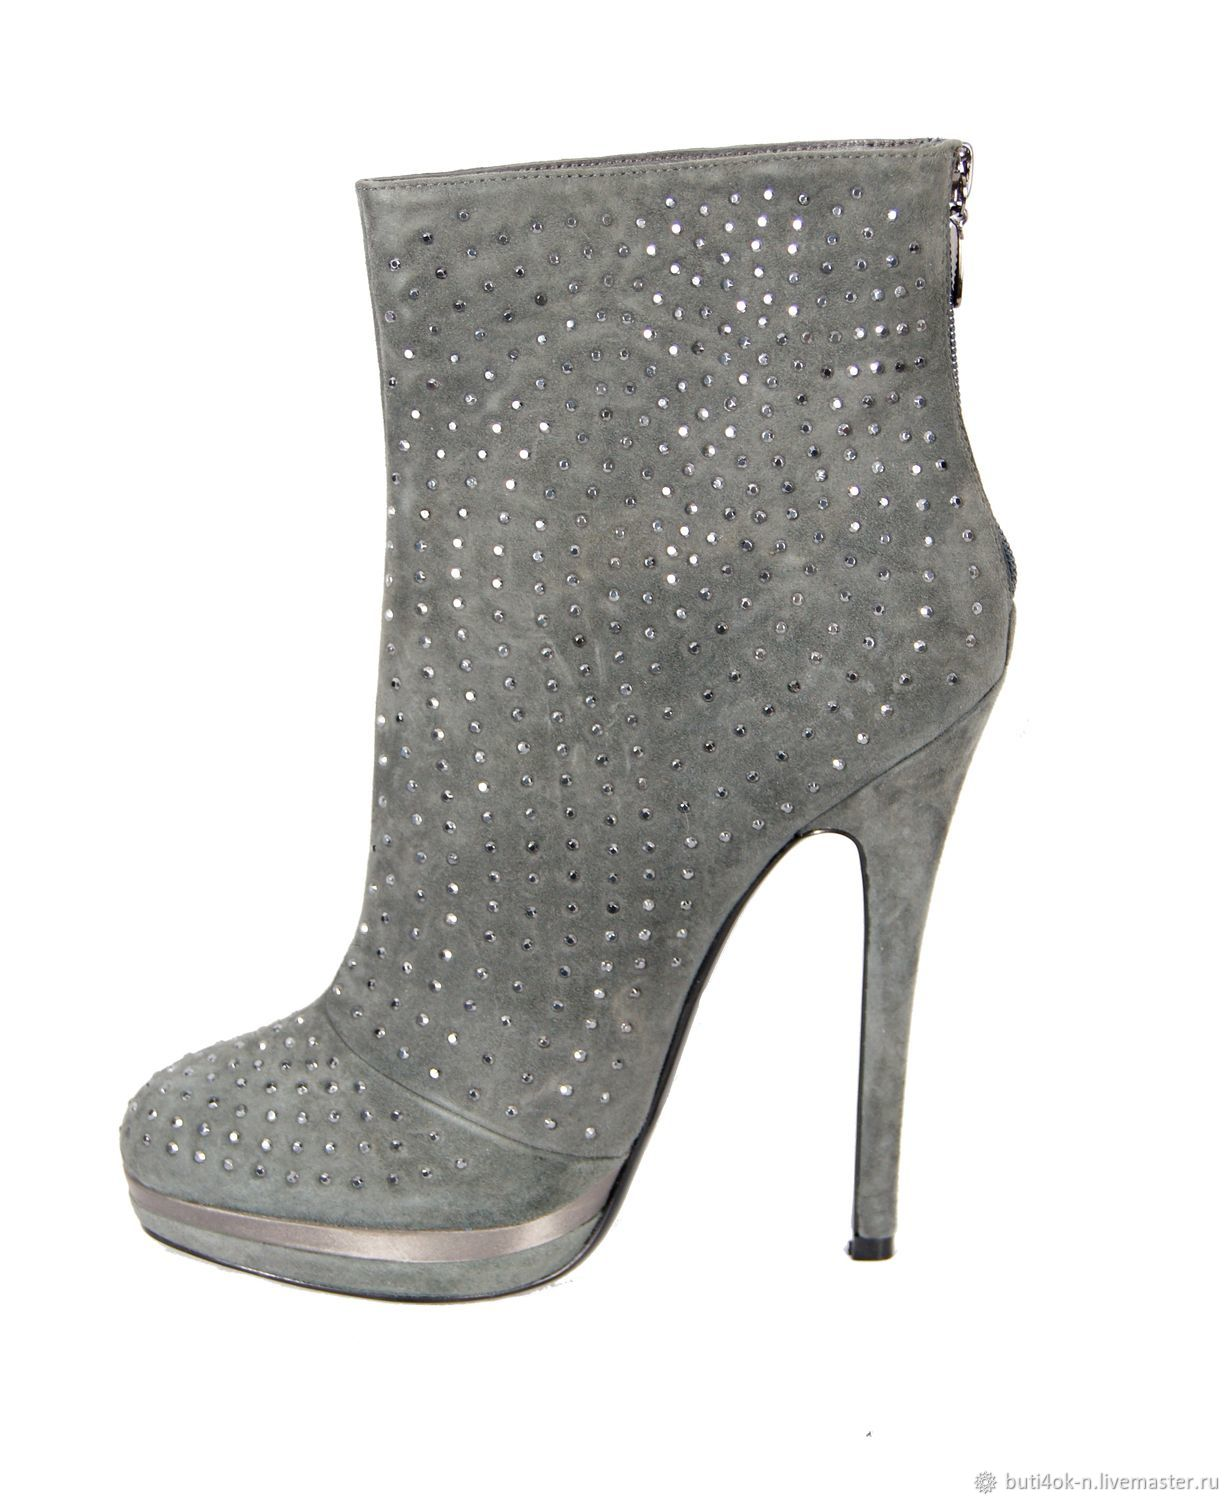 Gray boots made of velour, decorated with rhinestones, Vintage shoes, Nelidovo,  Фото №1